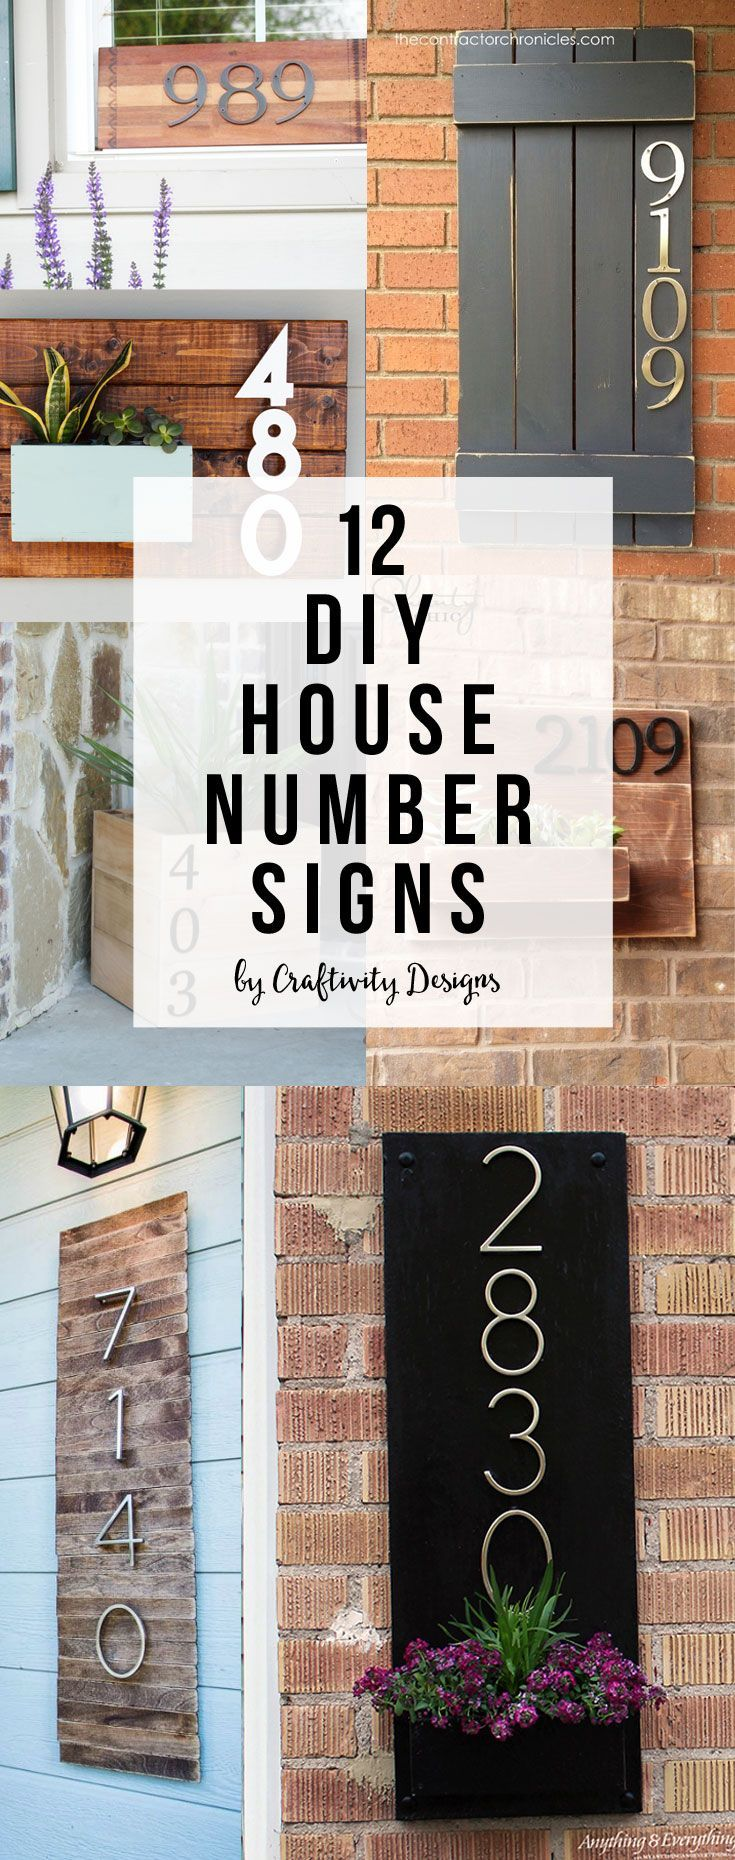 12 DIY House Number Signs DIY House